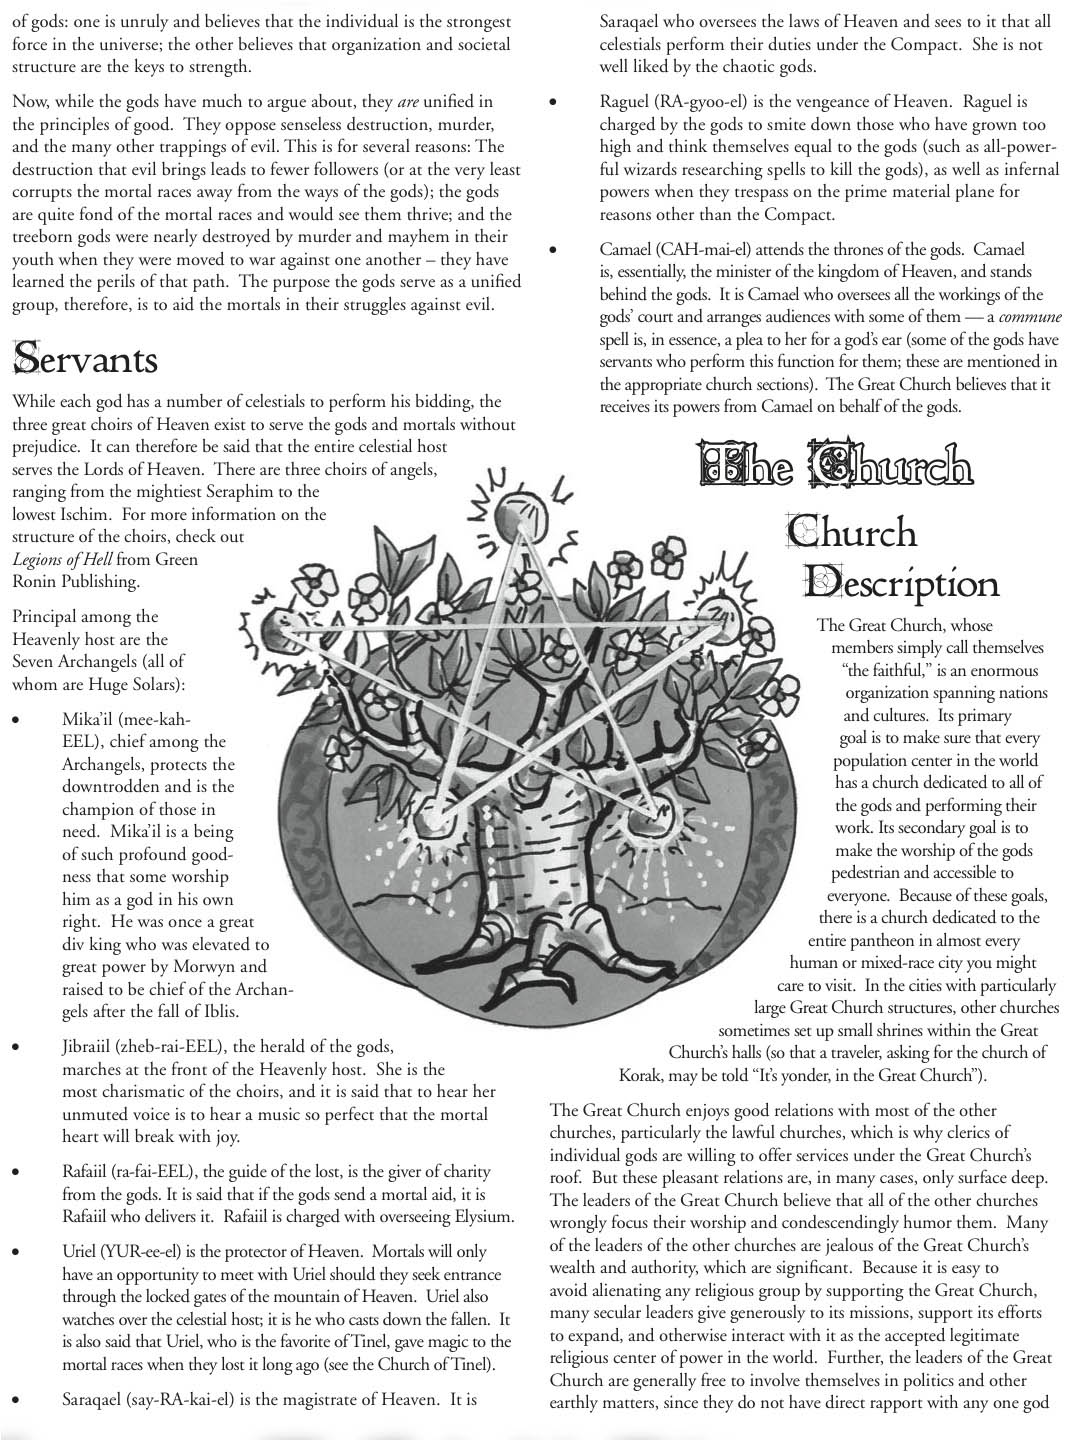 Great church page 3